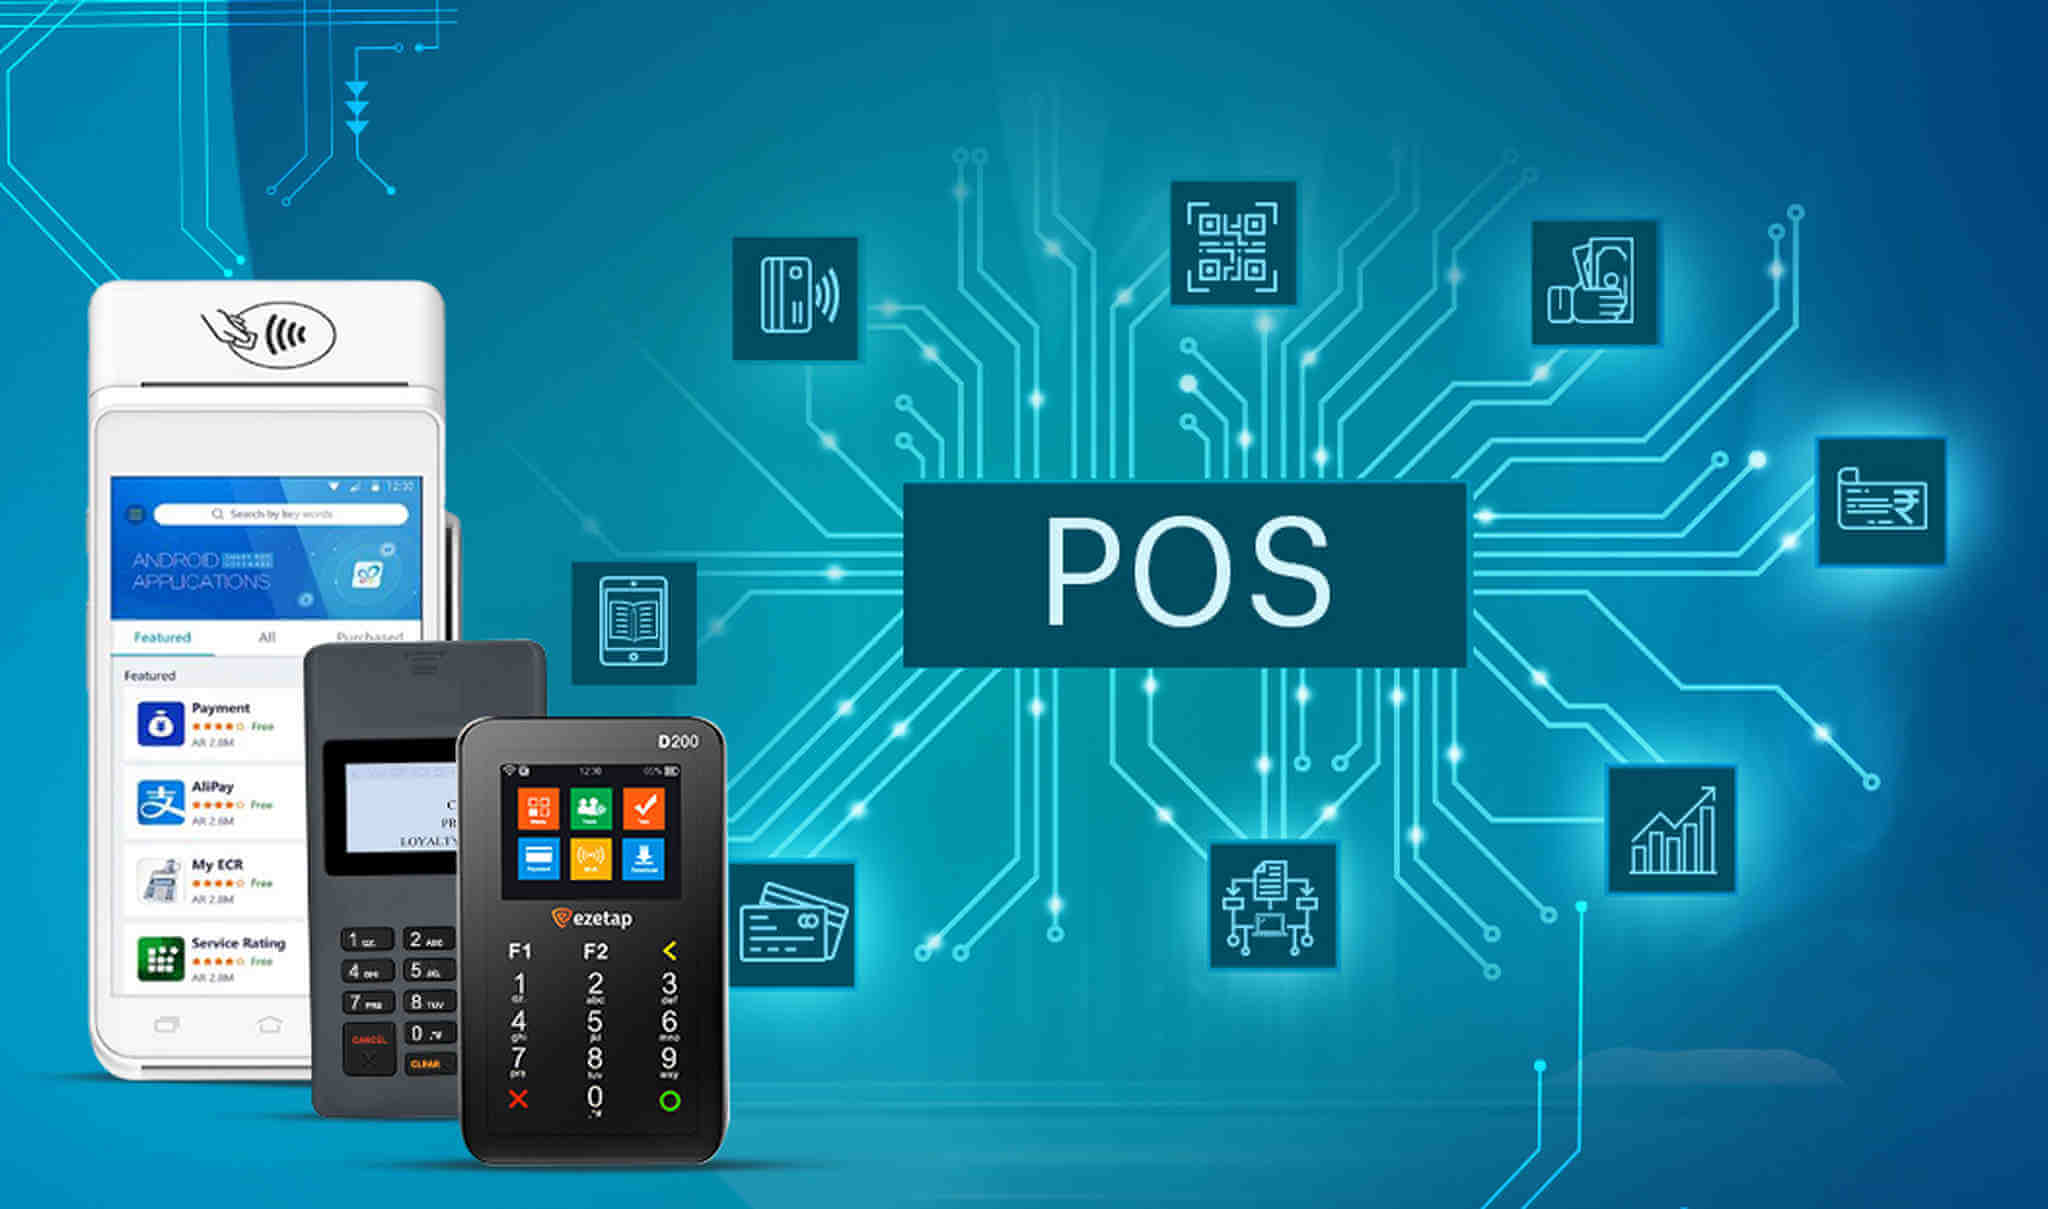 6 Things to Consider While Buying a POS Machine